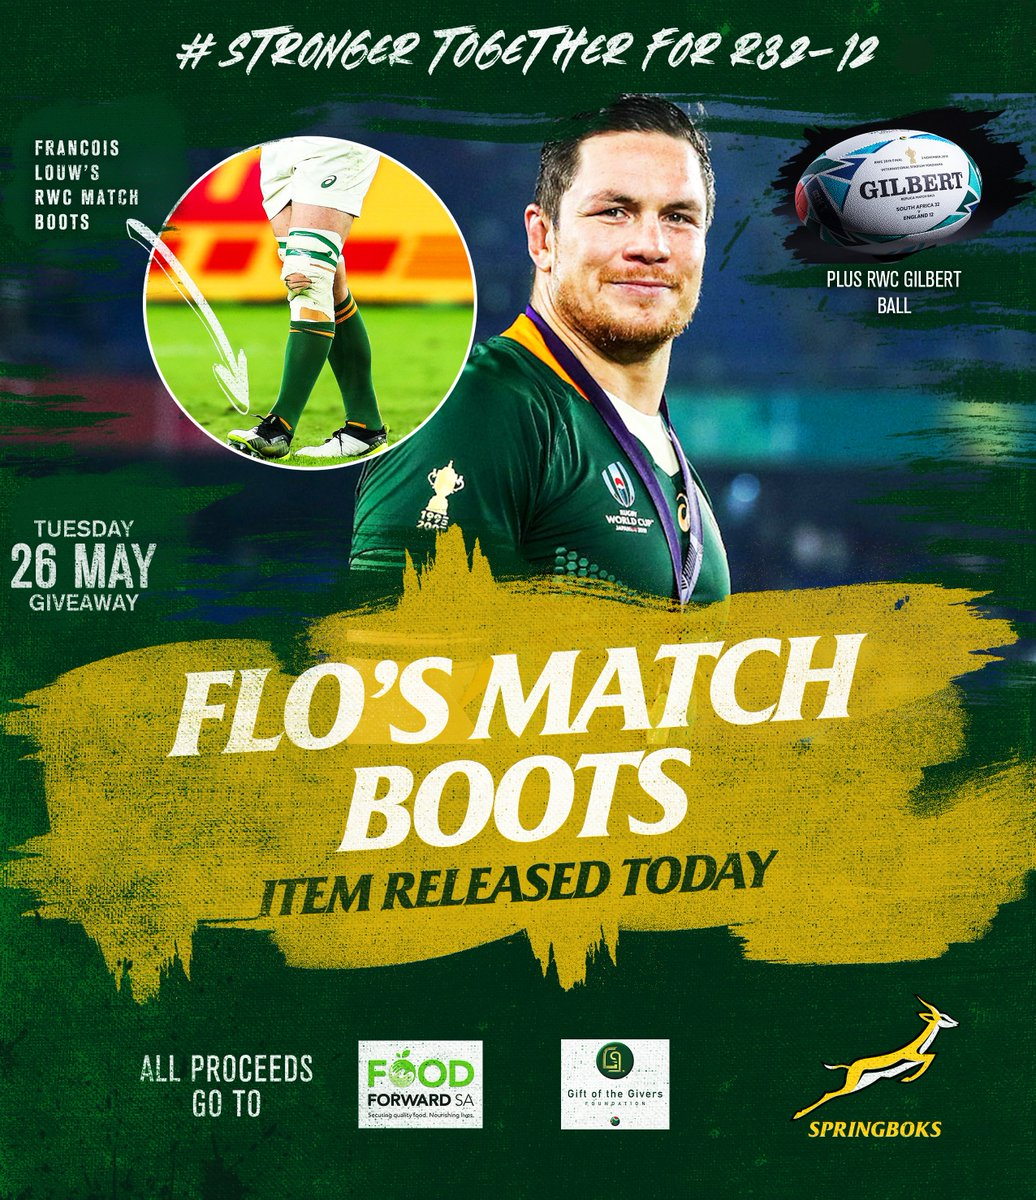 Hes one of the best in the business at the breakdown...and his RWC match boots could be yours for just R32-12. All proceeds go towards feeding a hungry family affected by COVID-19. Buy a ticket here: bit.ly/3cM5xo5 Todays items...Flos Match Boots + A RWC GILBERT BALL